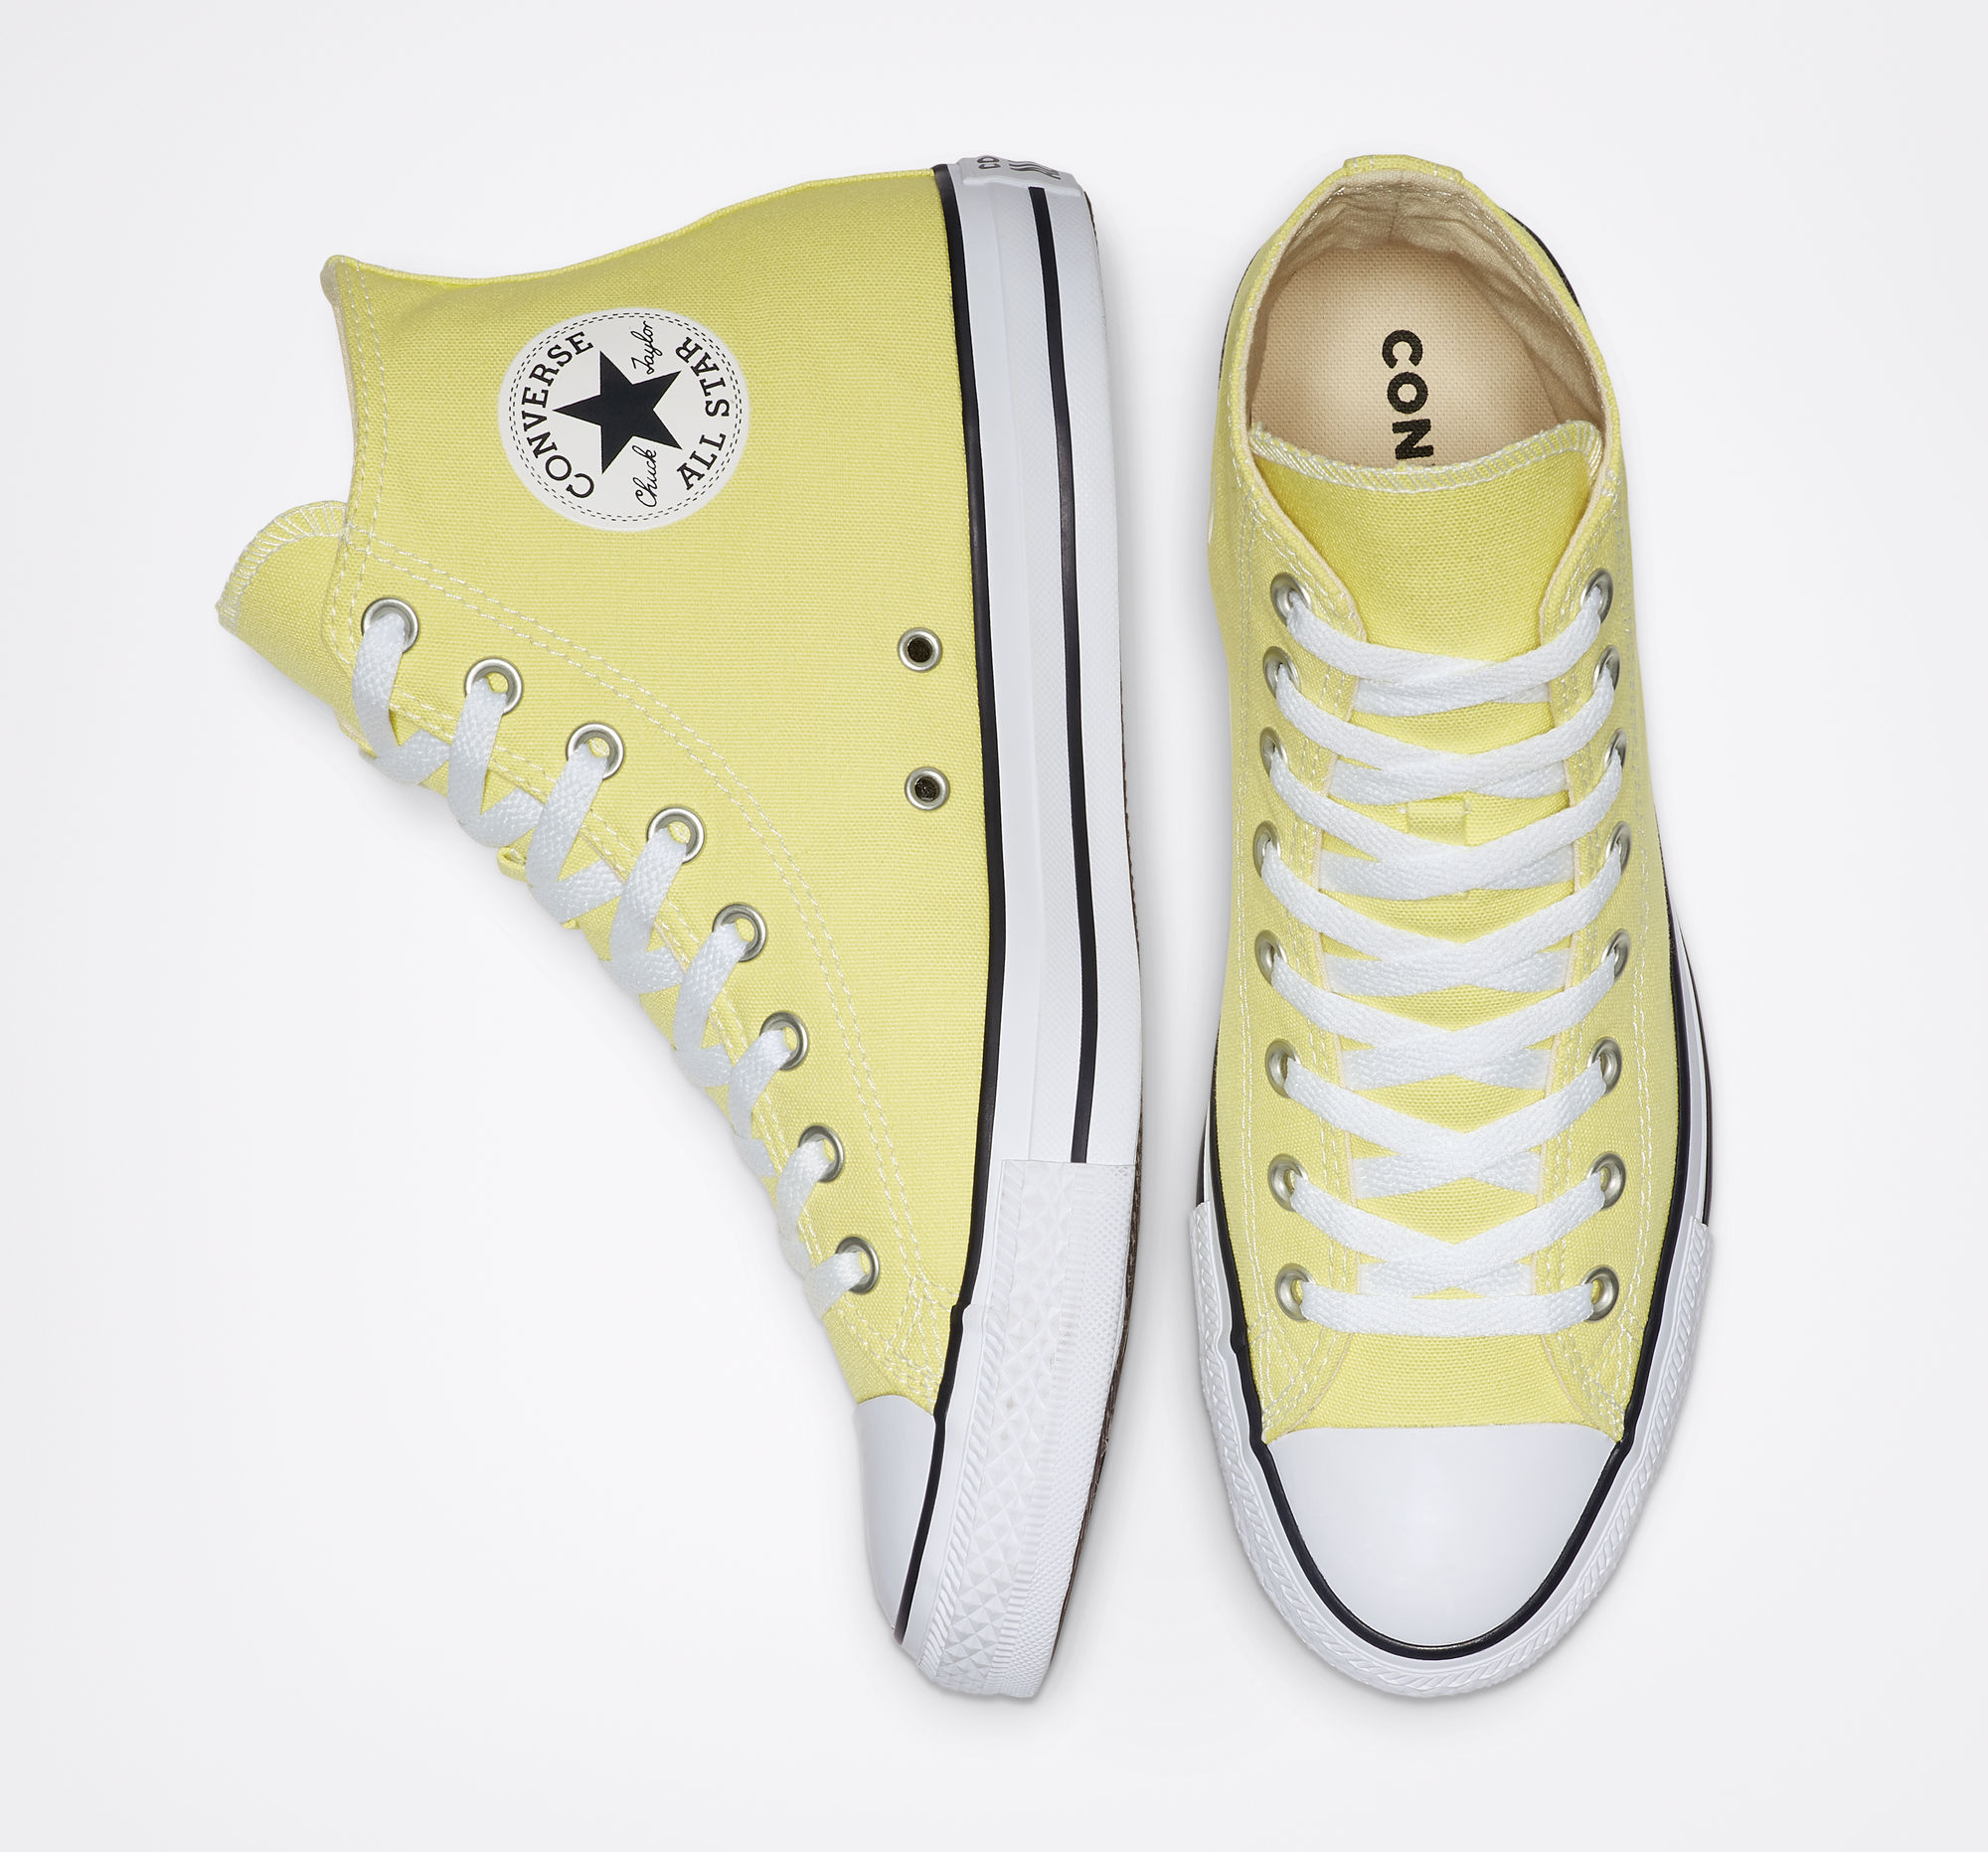 bcb39f1e0 Yellow Converse Shoes: The best Converse sneaker styles in 25 shades of  yellow